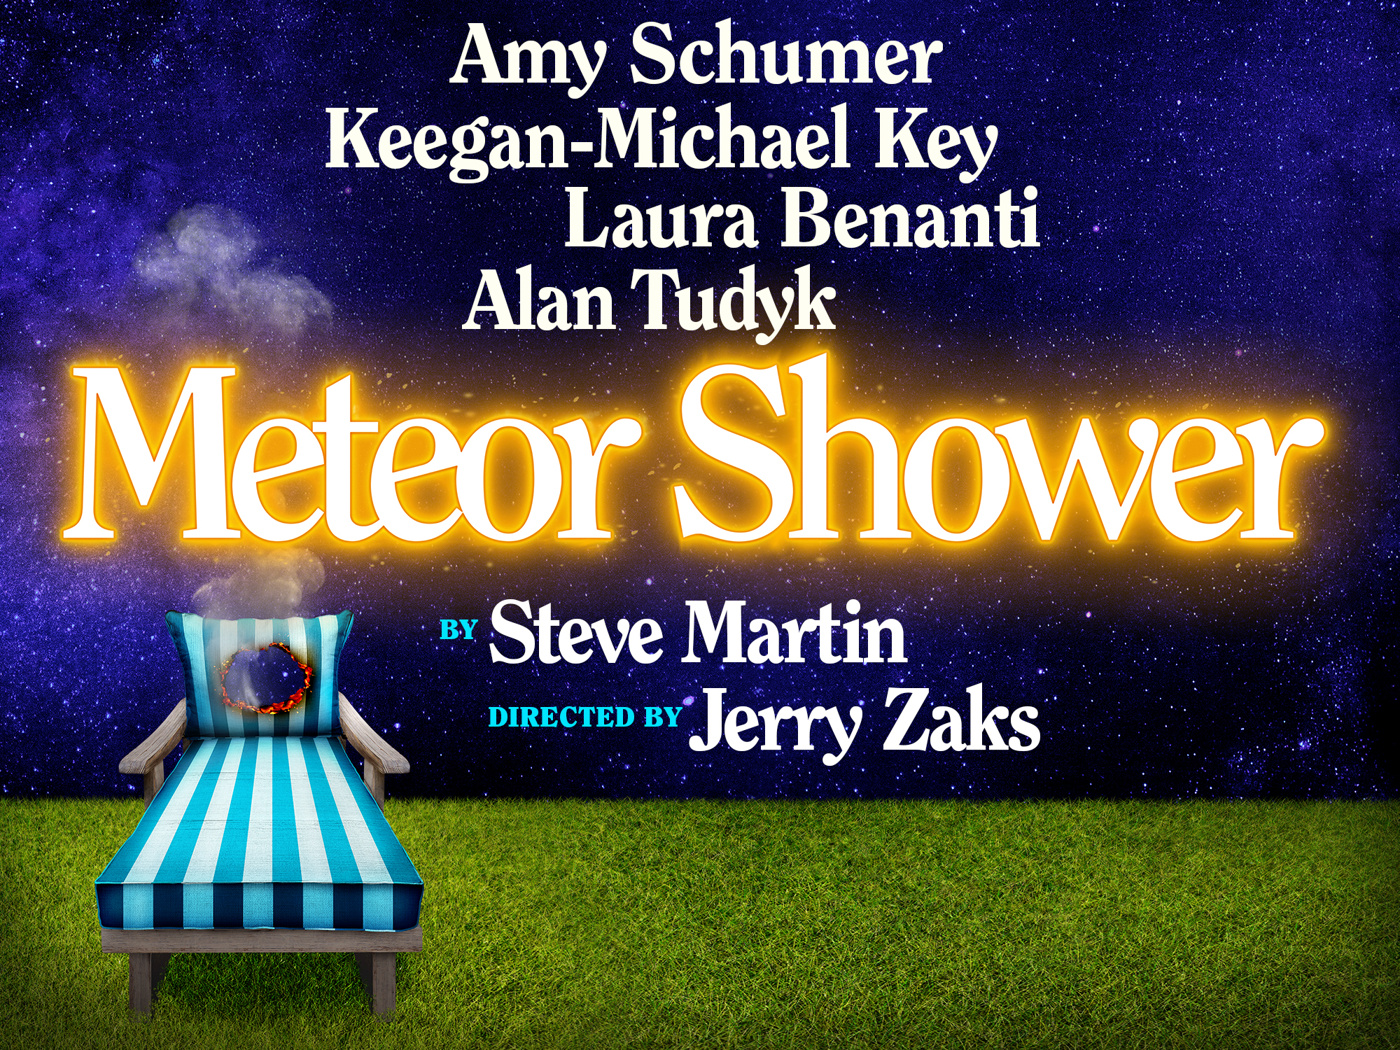 Broadway Welcomes Amy Schumer in Meteor Shower…